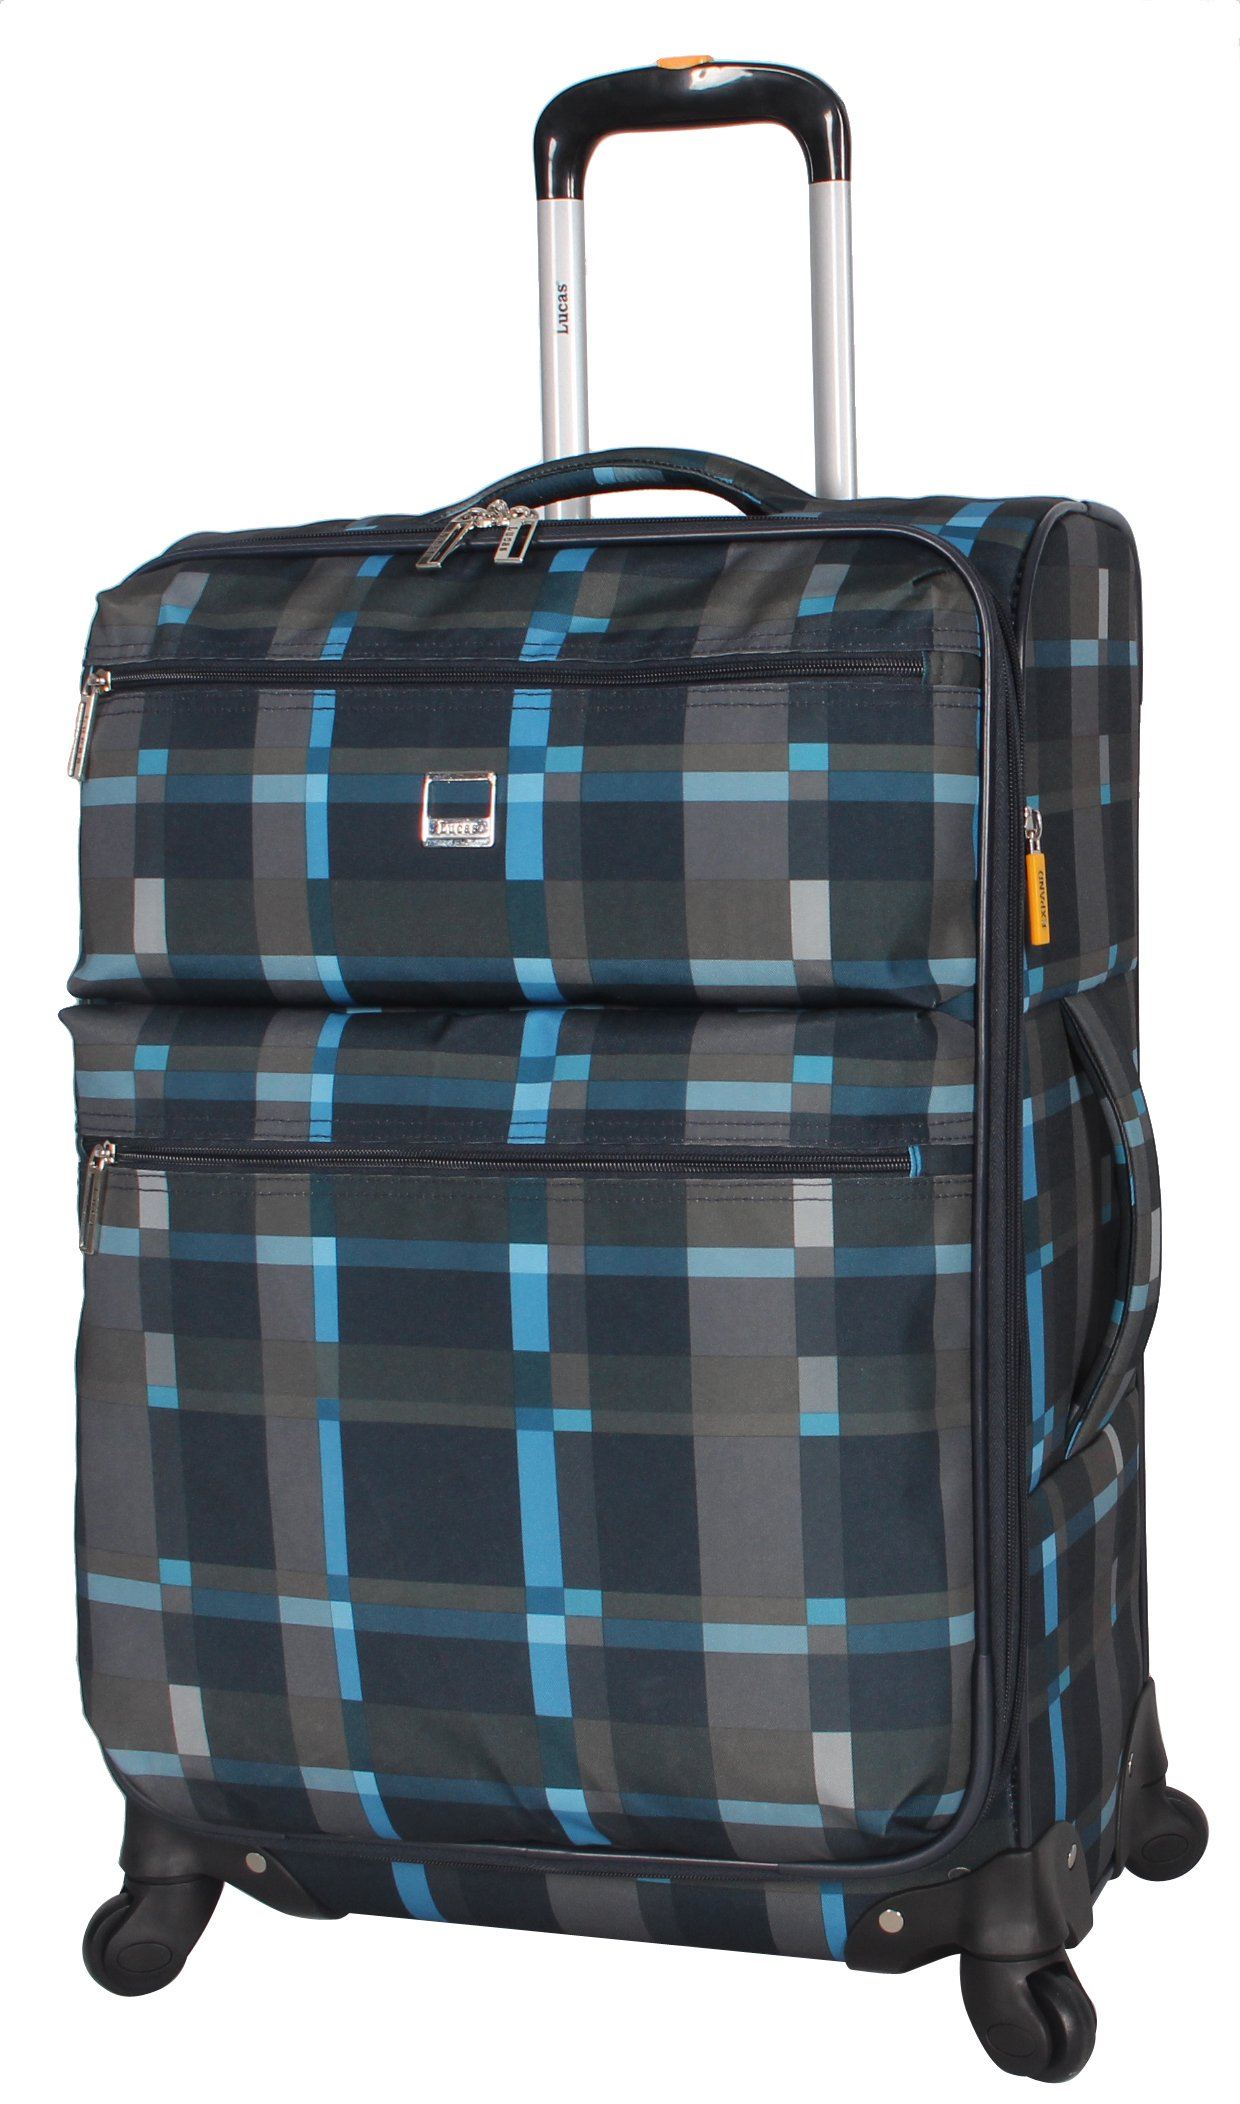 Lucas Luggage Ultra Lightweight Carry On 20 inch Expandable Suitcase With Spinner Wheels (20in, Old School Navy)